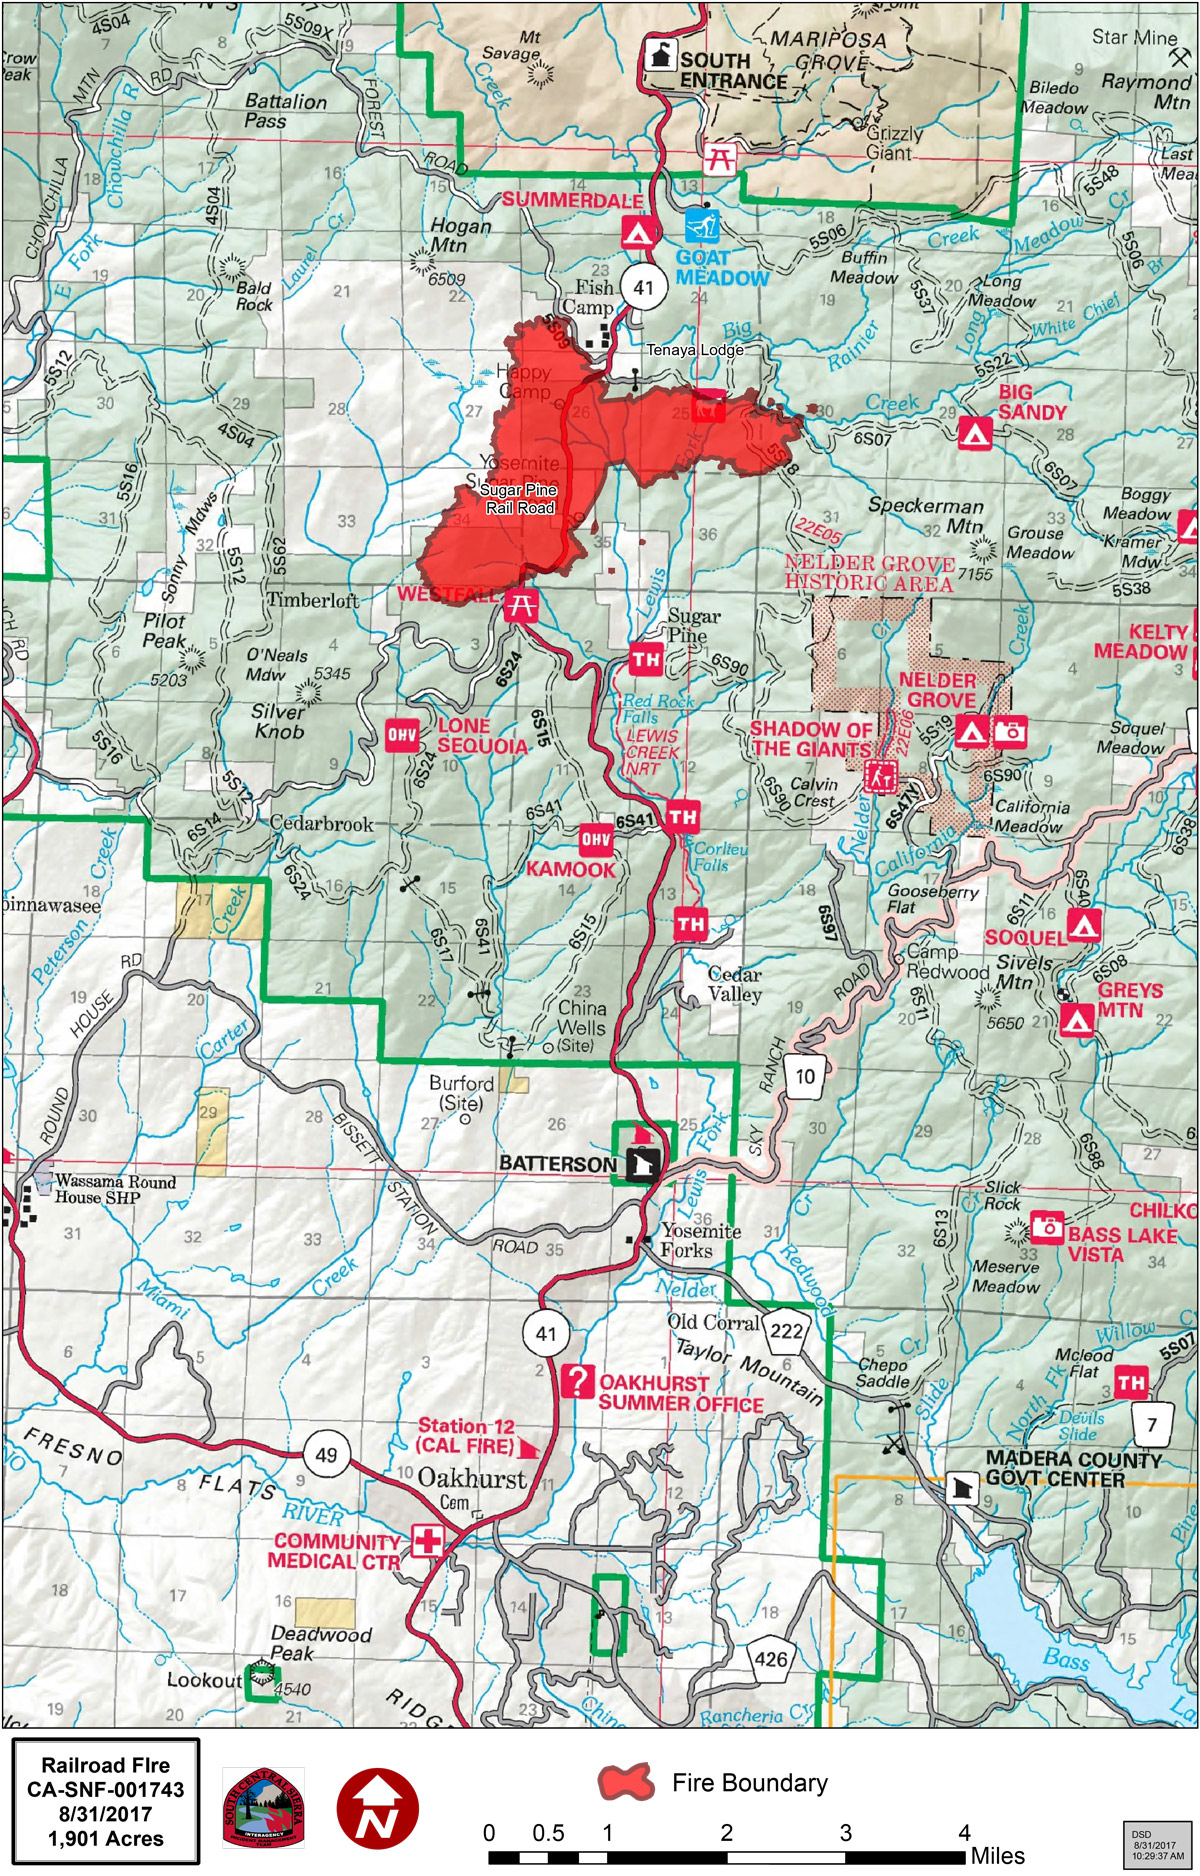 railroad fire map august  . railroad fire in madera and mariposa counties perimeter map for